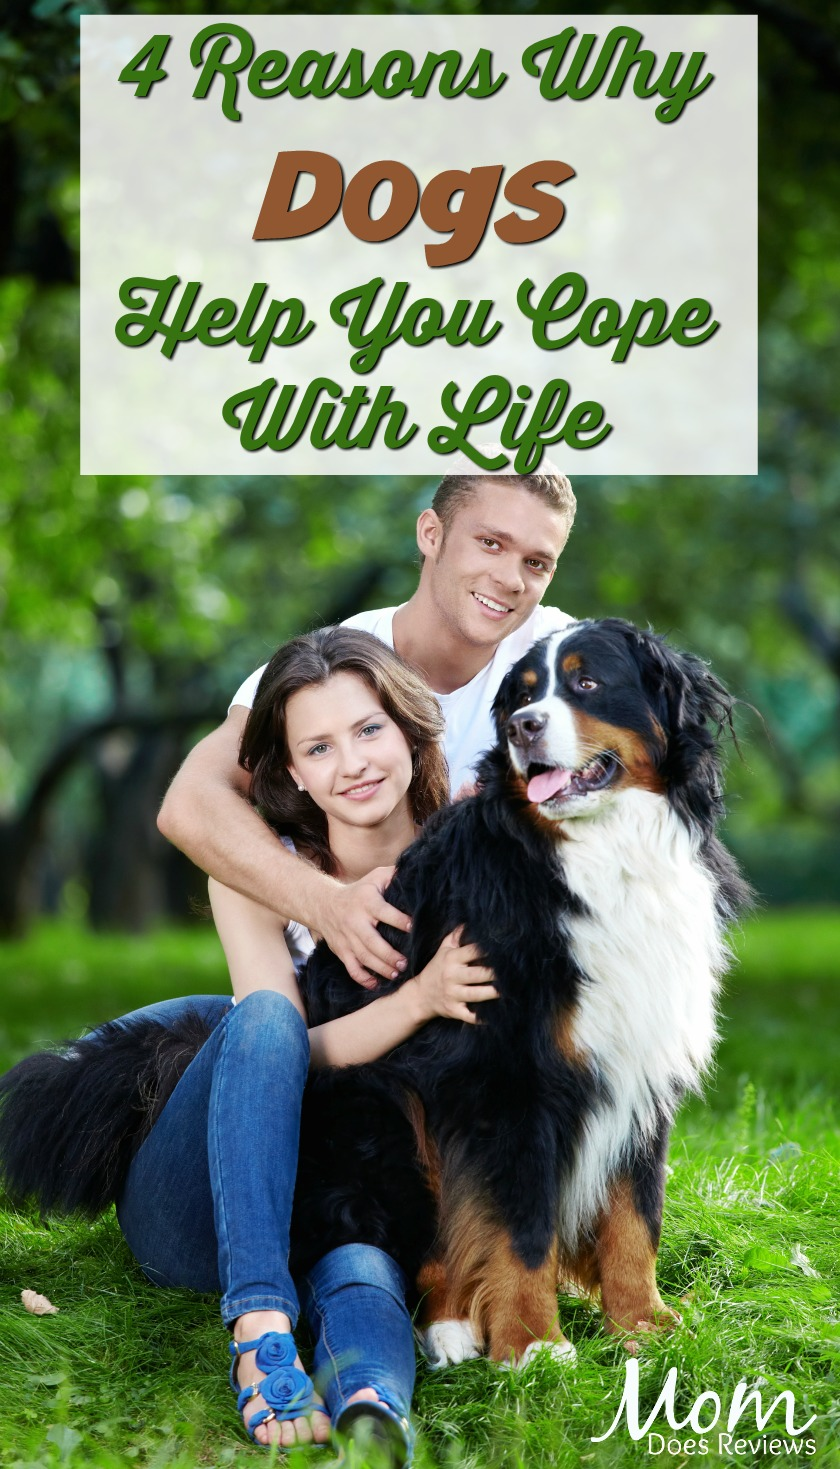 4 Reasons Why Caring For A Dog Helps You Cope With Life #pets #dogs #coping